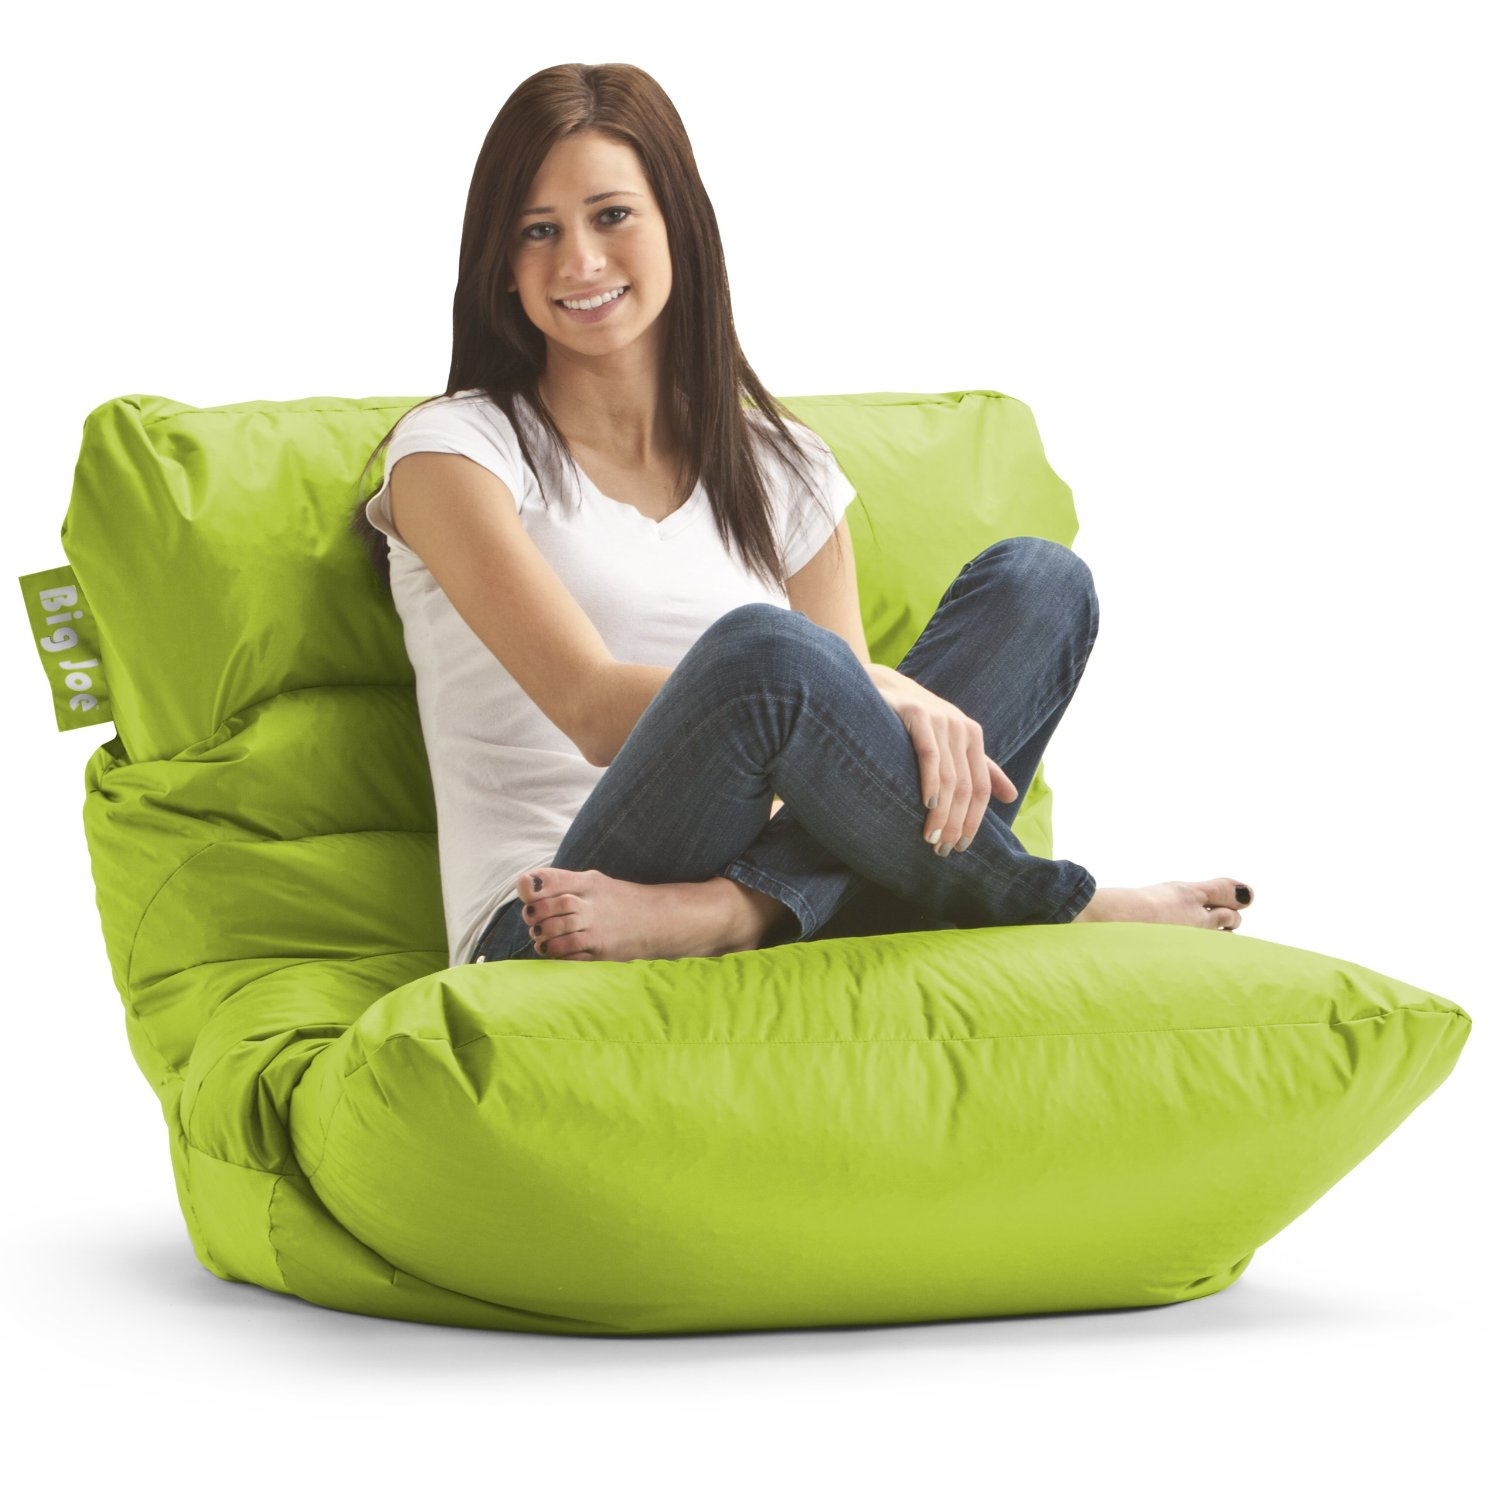 Amazon.com - Big Joe Roma Bean Bag Chair, Spicy Lime - Beanbag ...